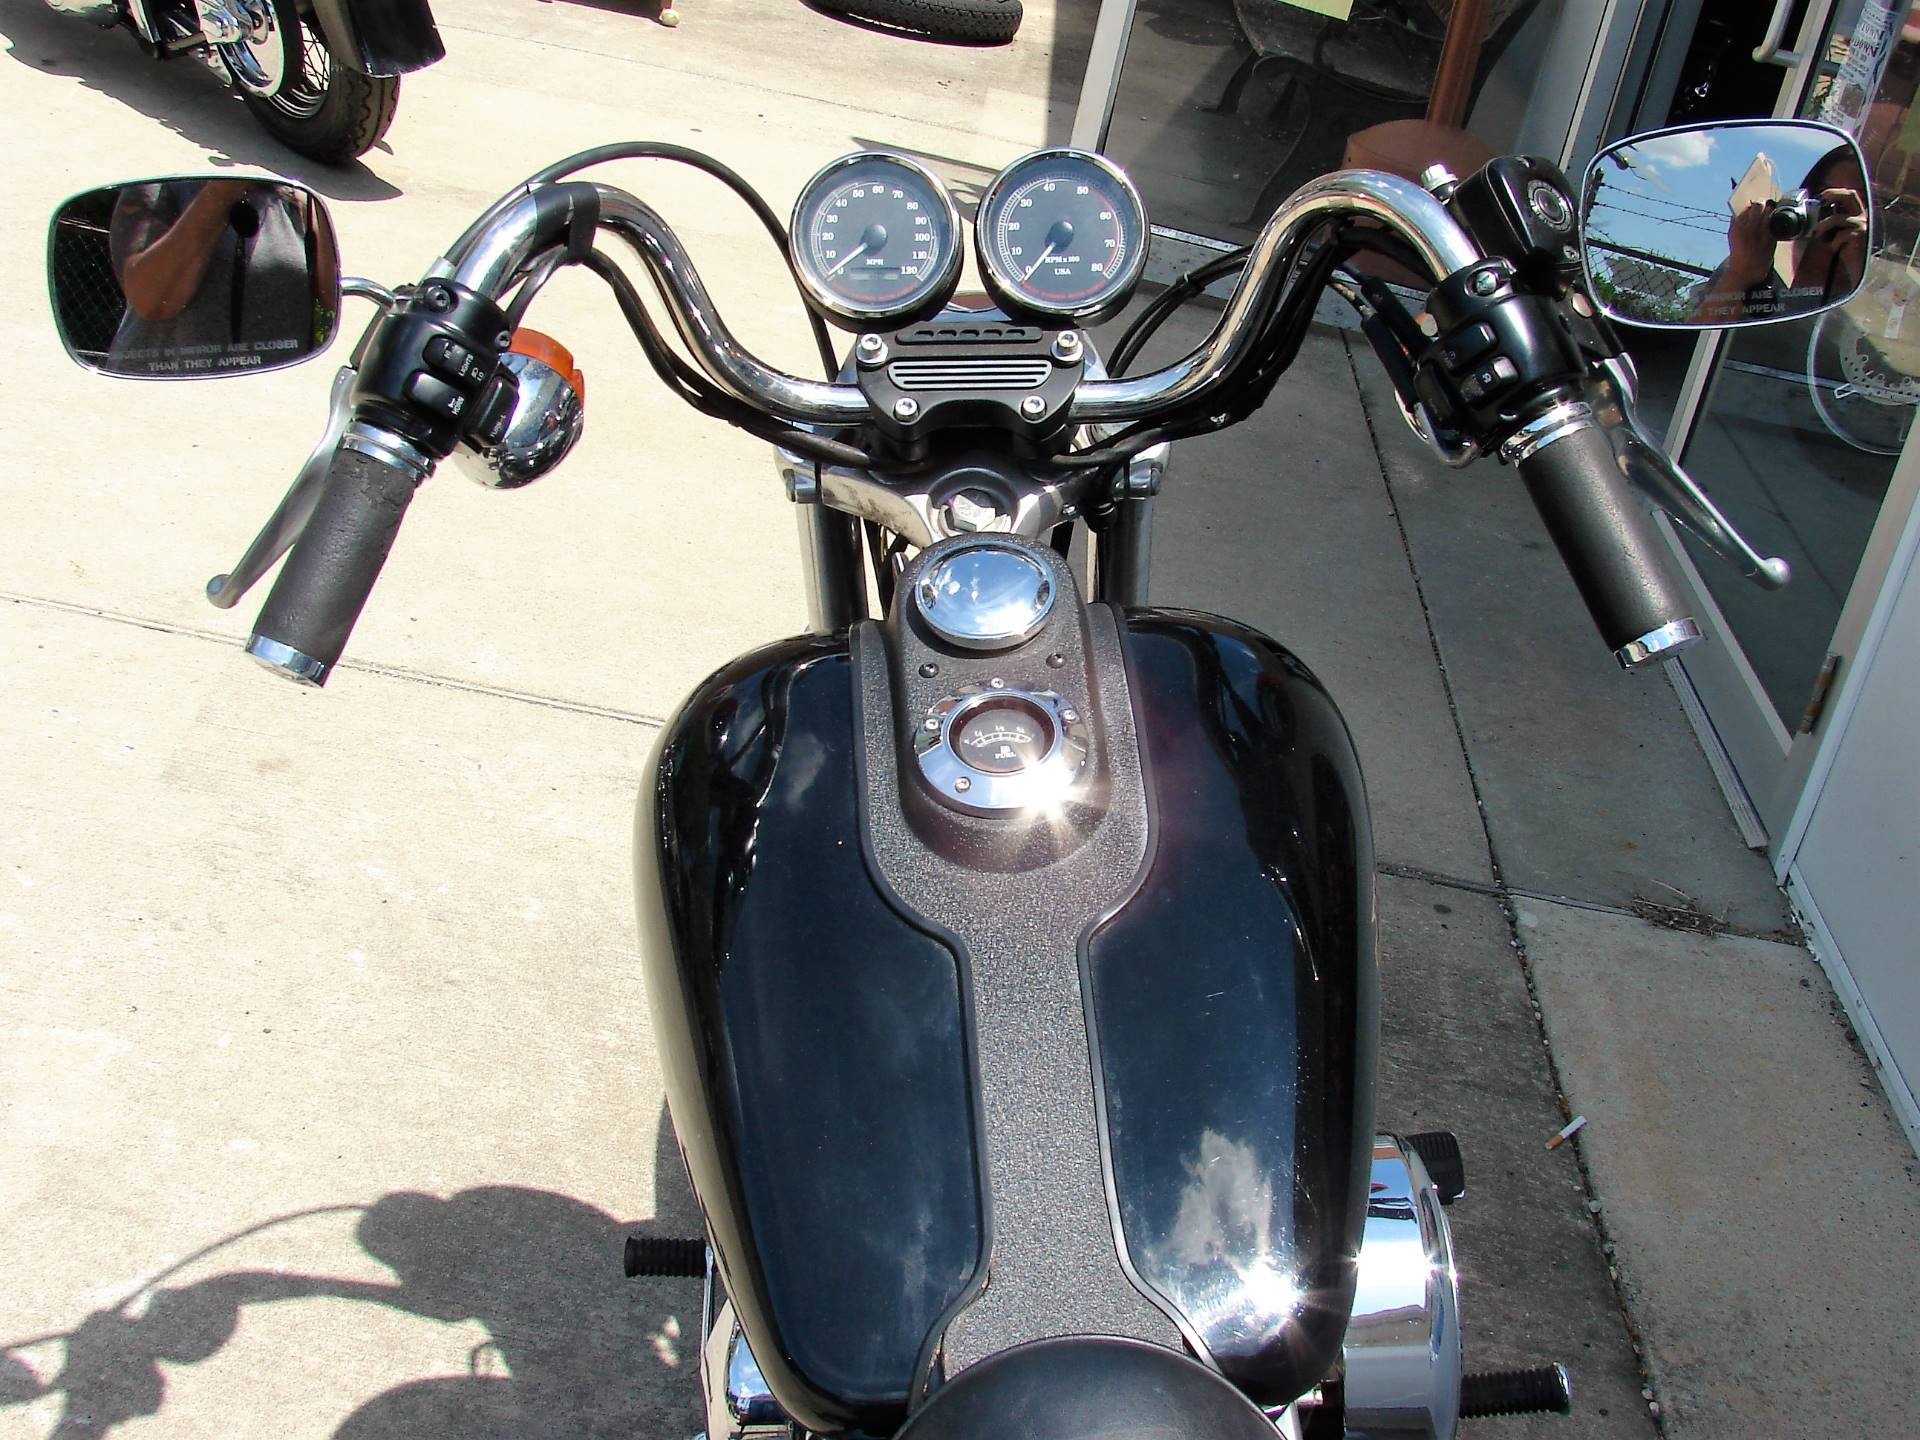 1998 Harley-Davidson Dyna Super Glide  (Black)  w/ Low Miles! in Williamstown, New Jersey - Photo 5